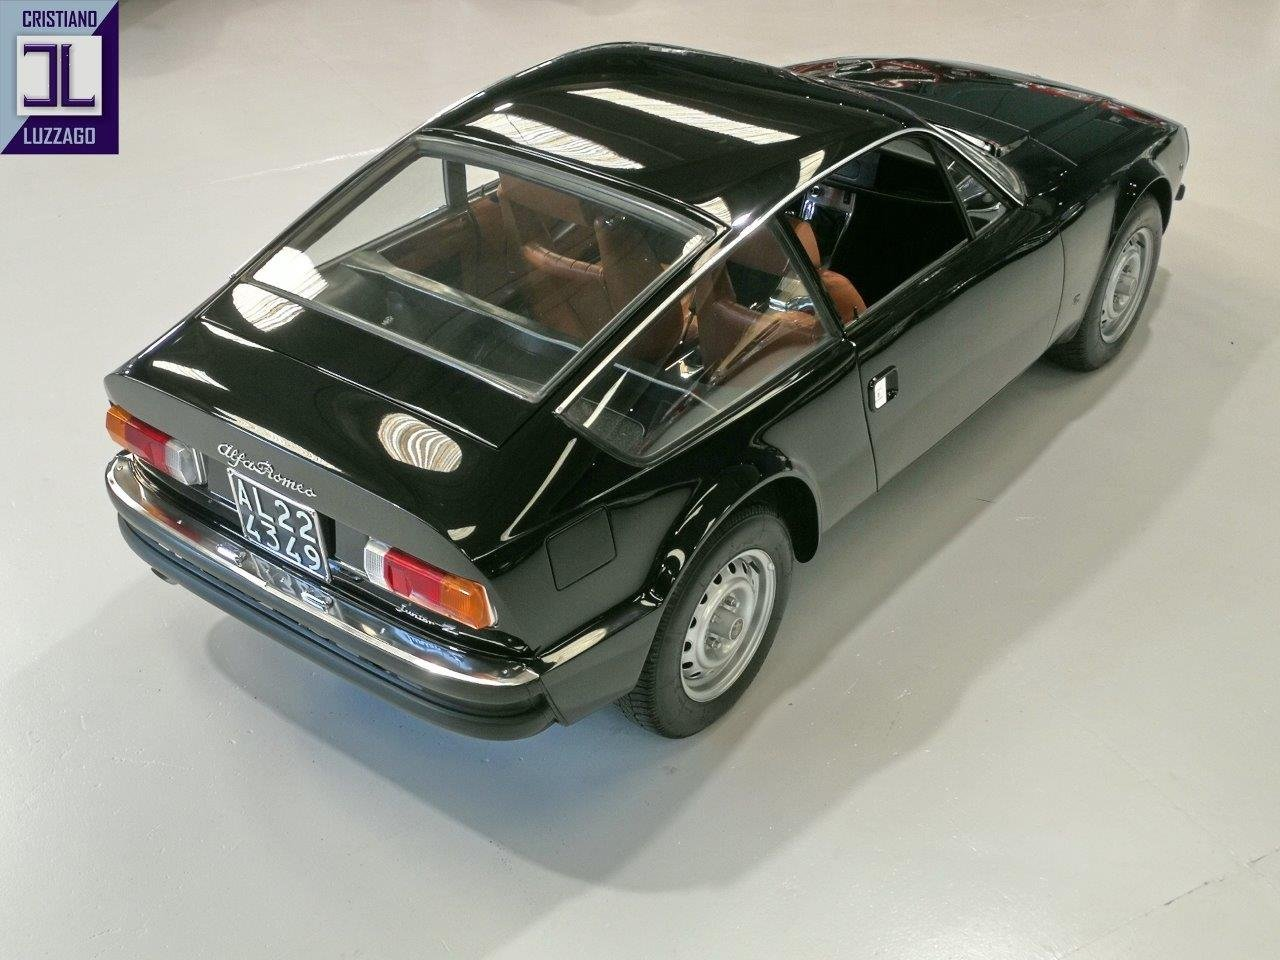 1971 ALFA ROMEO GT JUNIOR ZAGATO 1300 For Sale (picture 2 of 6)